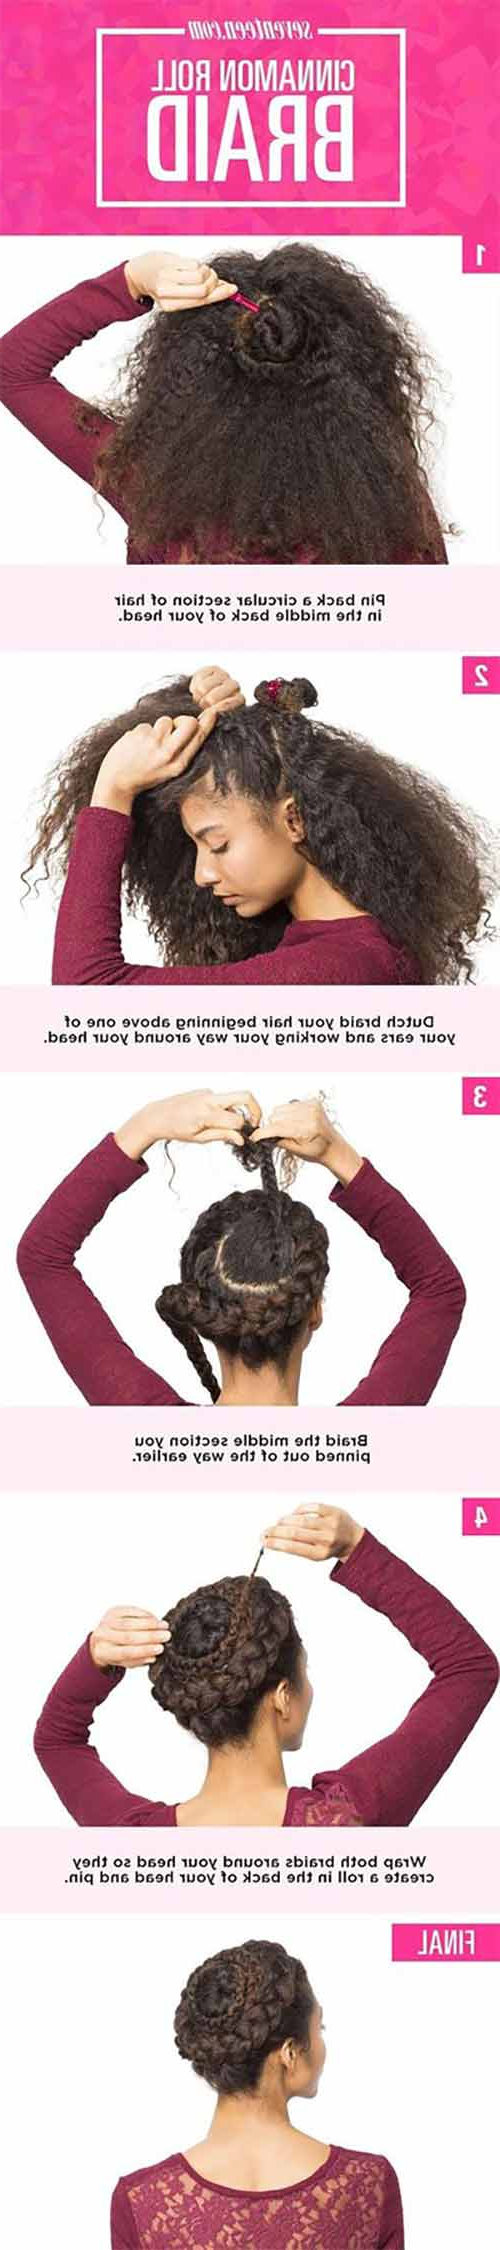 20 Incredibly Stunning Diy Updos For Curly Hair Pertaining To 2020 Cinnamon Bun Braided Hairstyles (View 3 of 20)